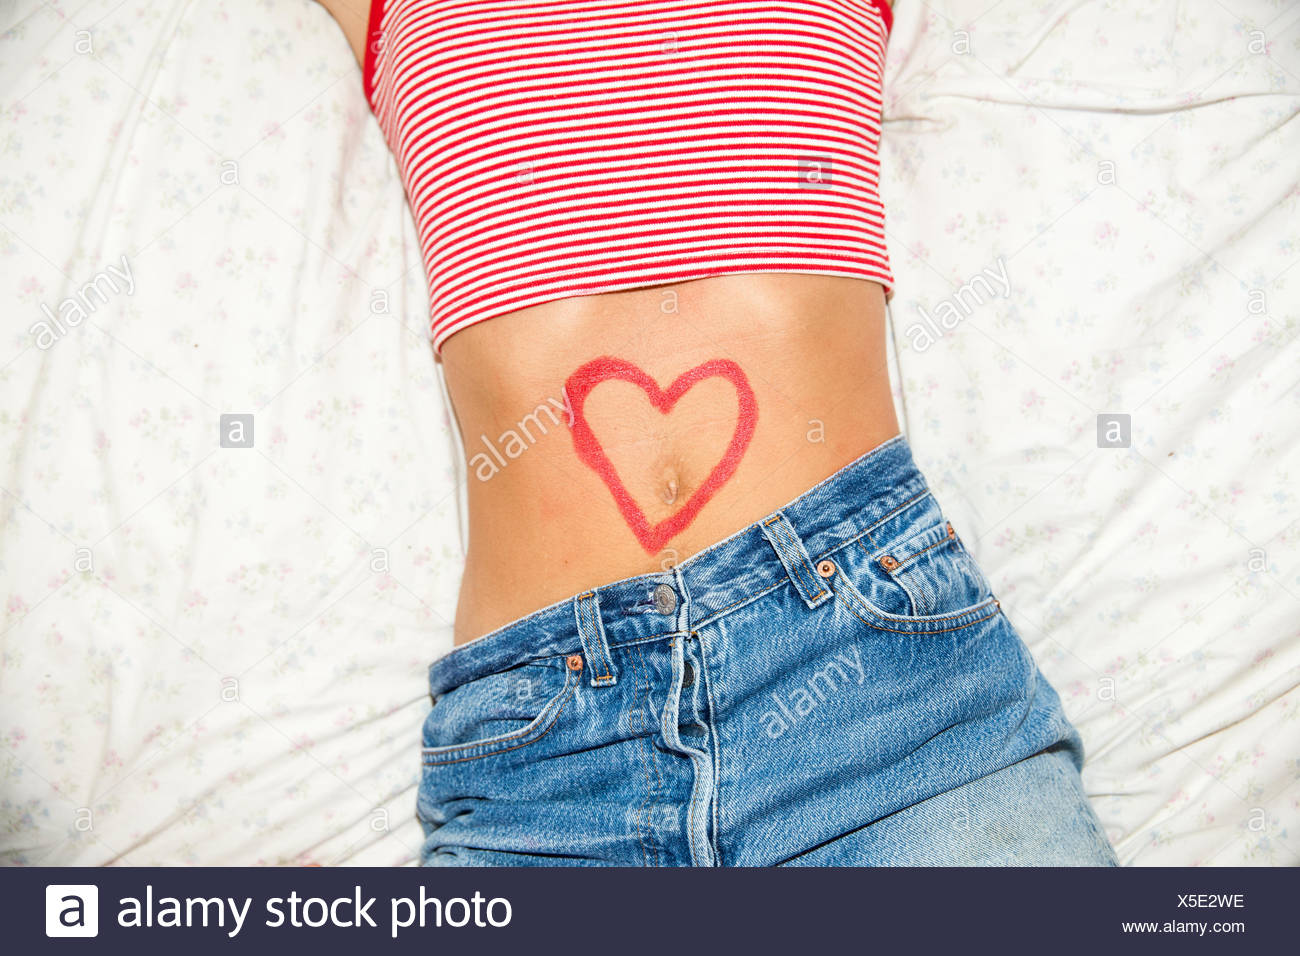 Midsection of woman with heart drawing on stomach - Stock Image